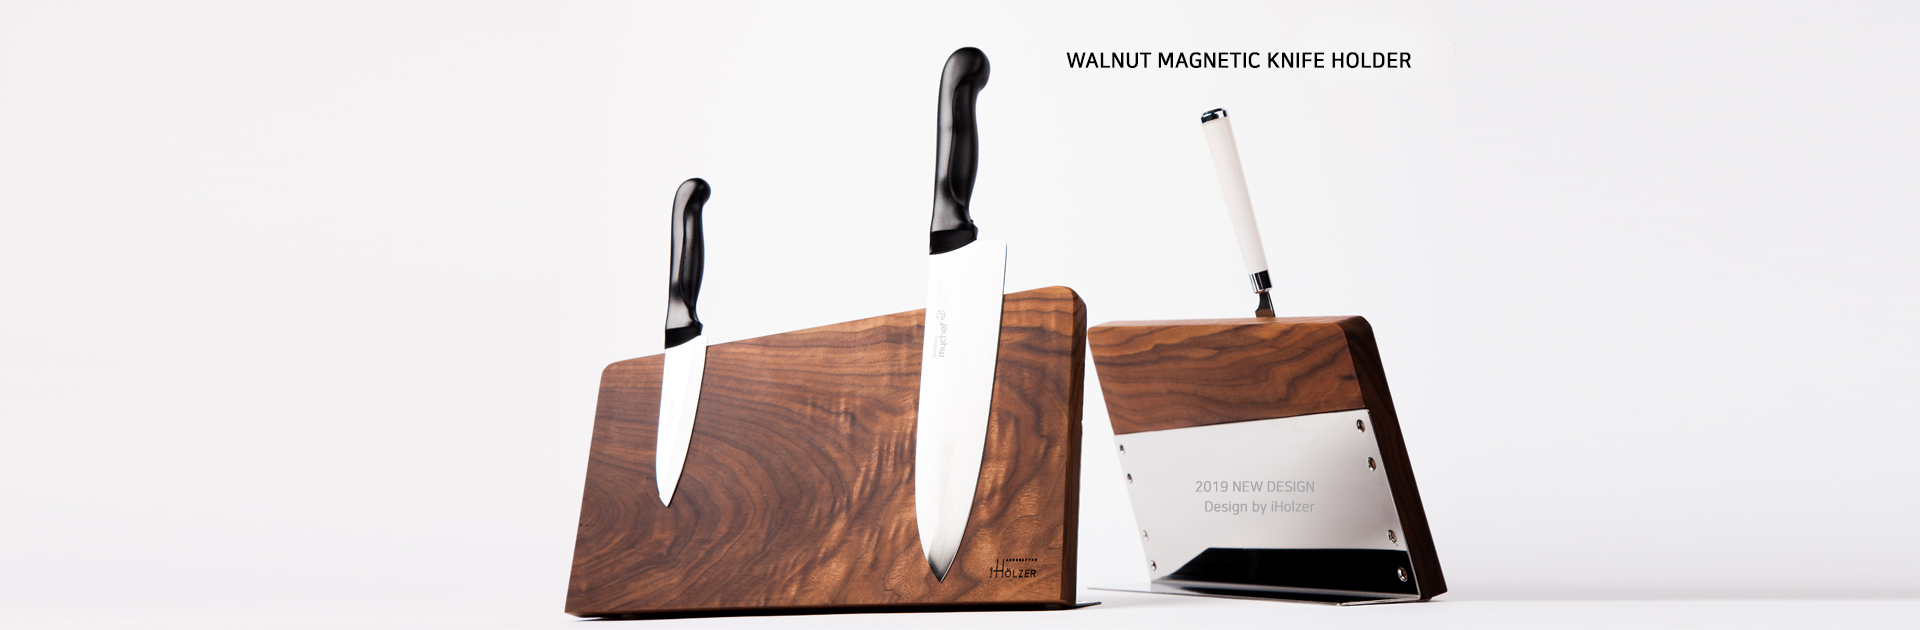 WALNUT MAGNETIC KNIFE HOLDER